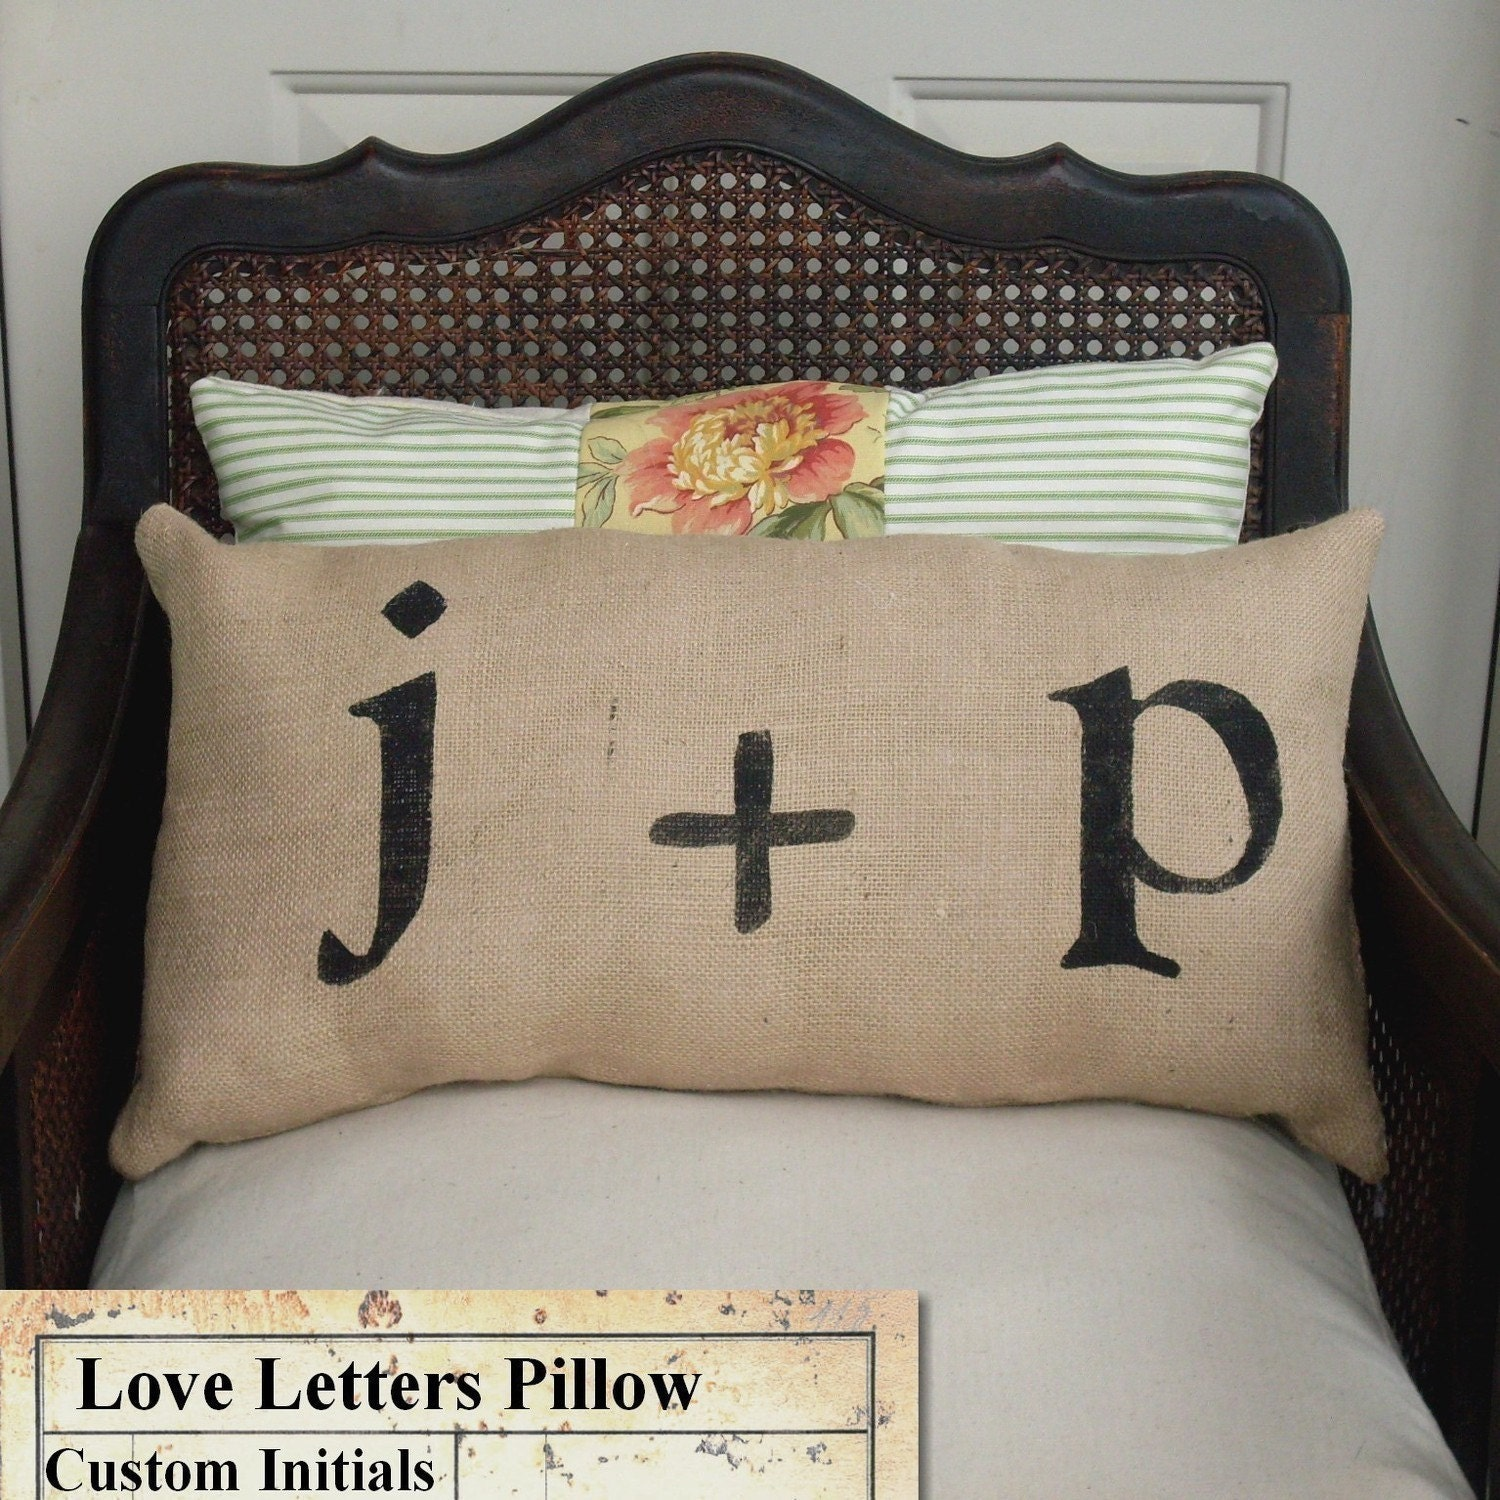 Love Letters - Burlap Feed Sack Pillow - Personalize with you and your sweetie's initial